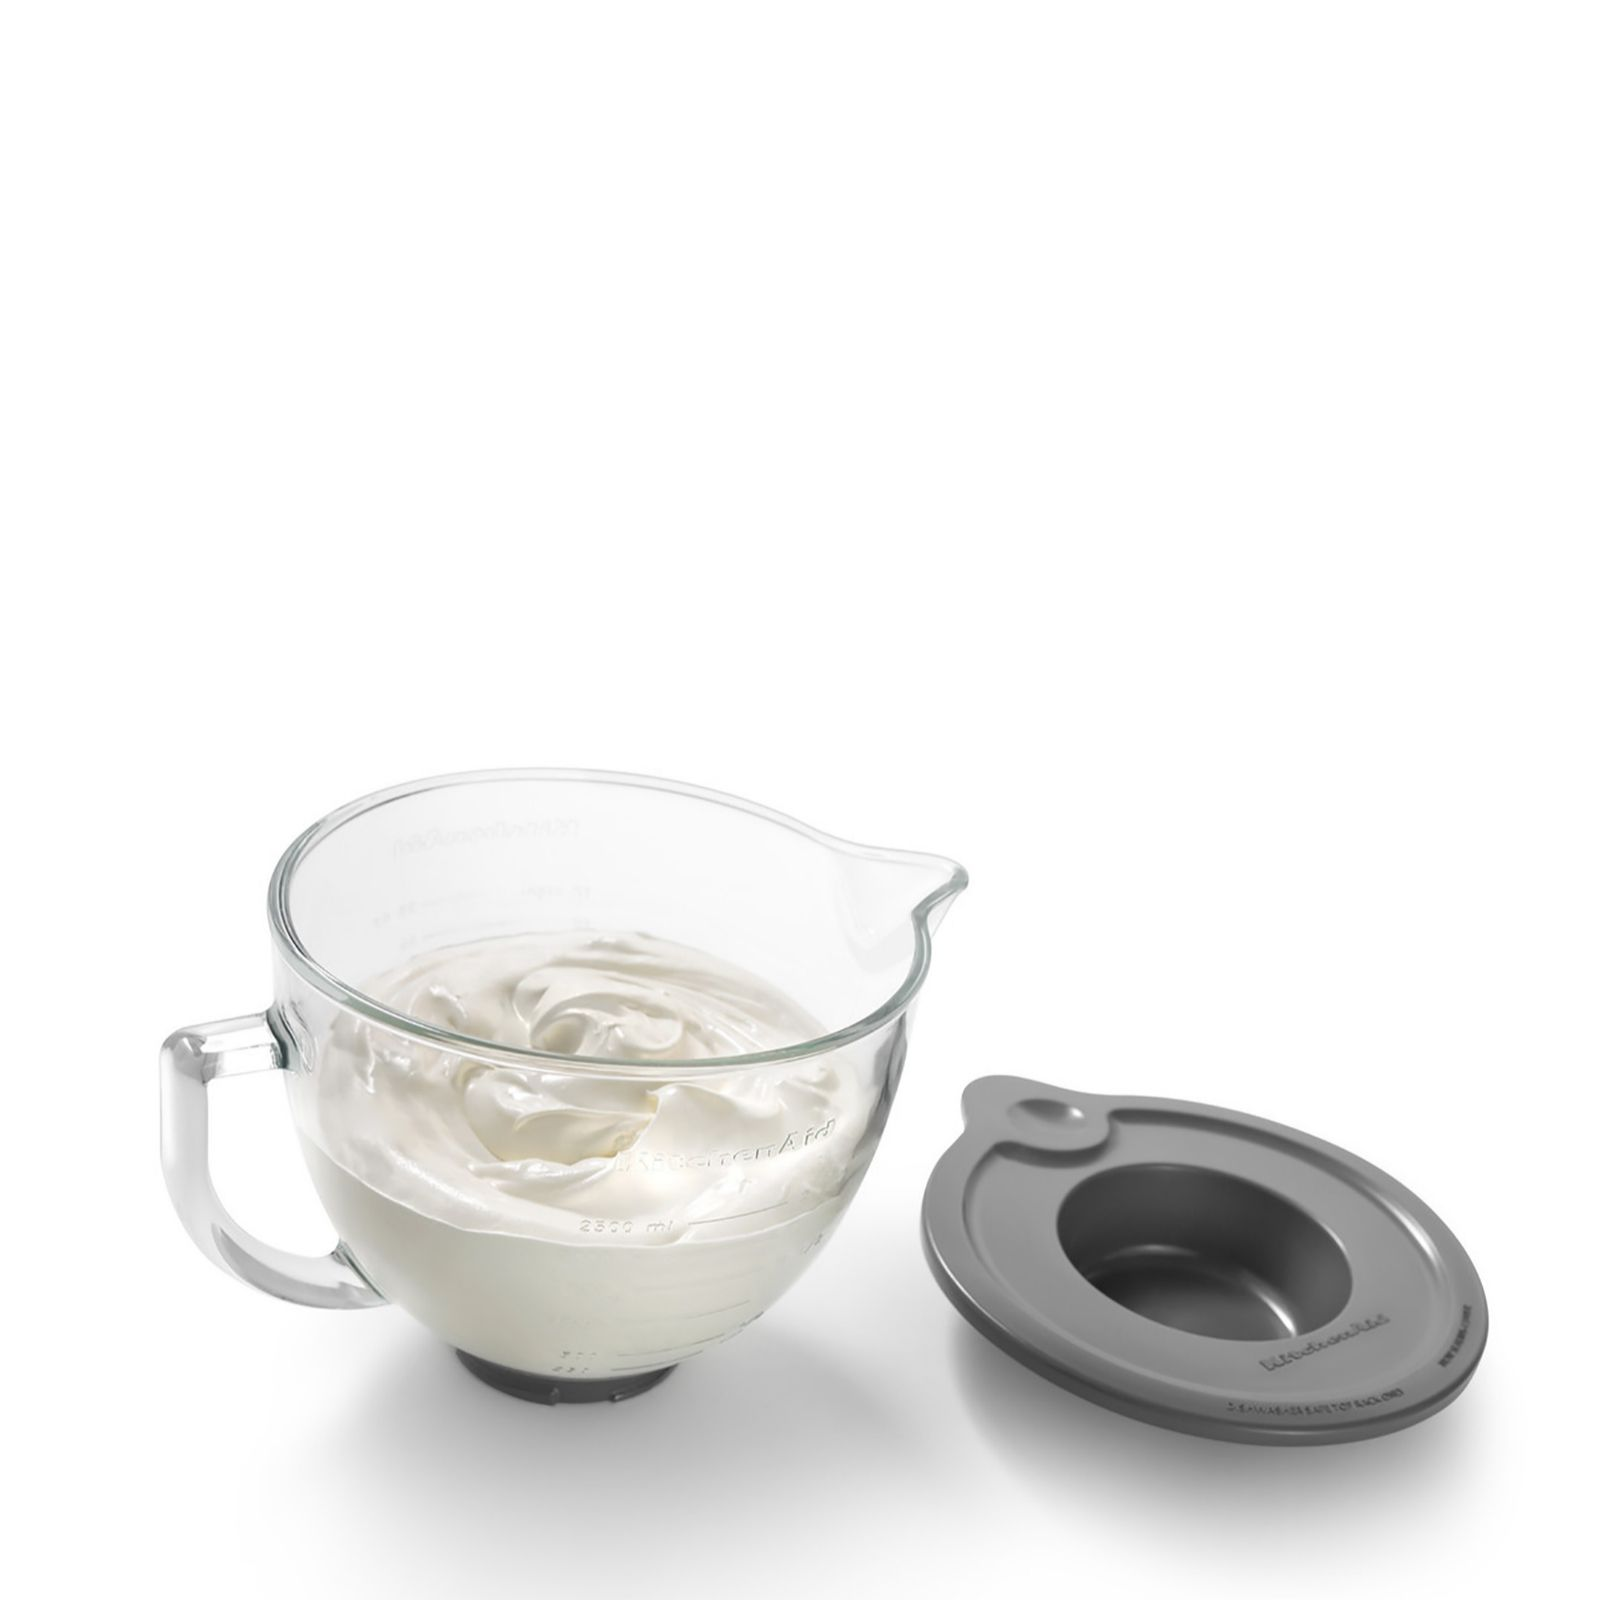 KitchenAid Frosted Glass Bowl For Artisan U0026 Classic Stand Mixer   QVC UK